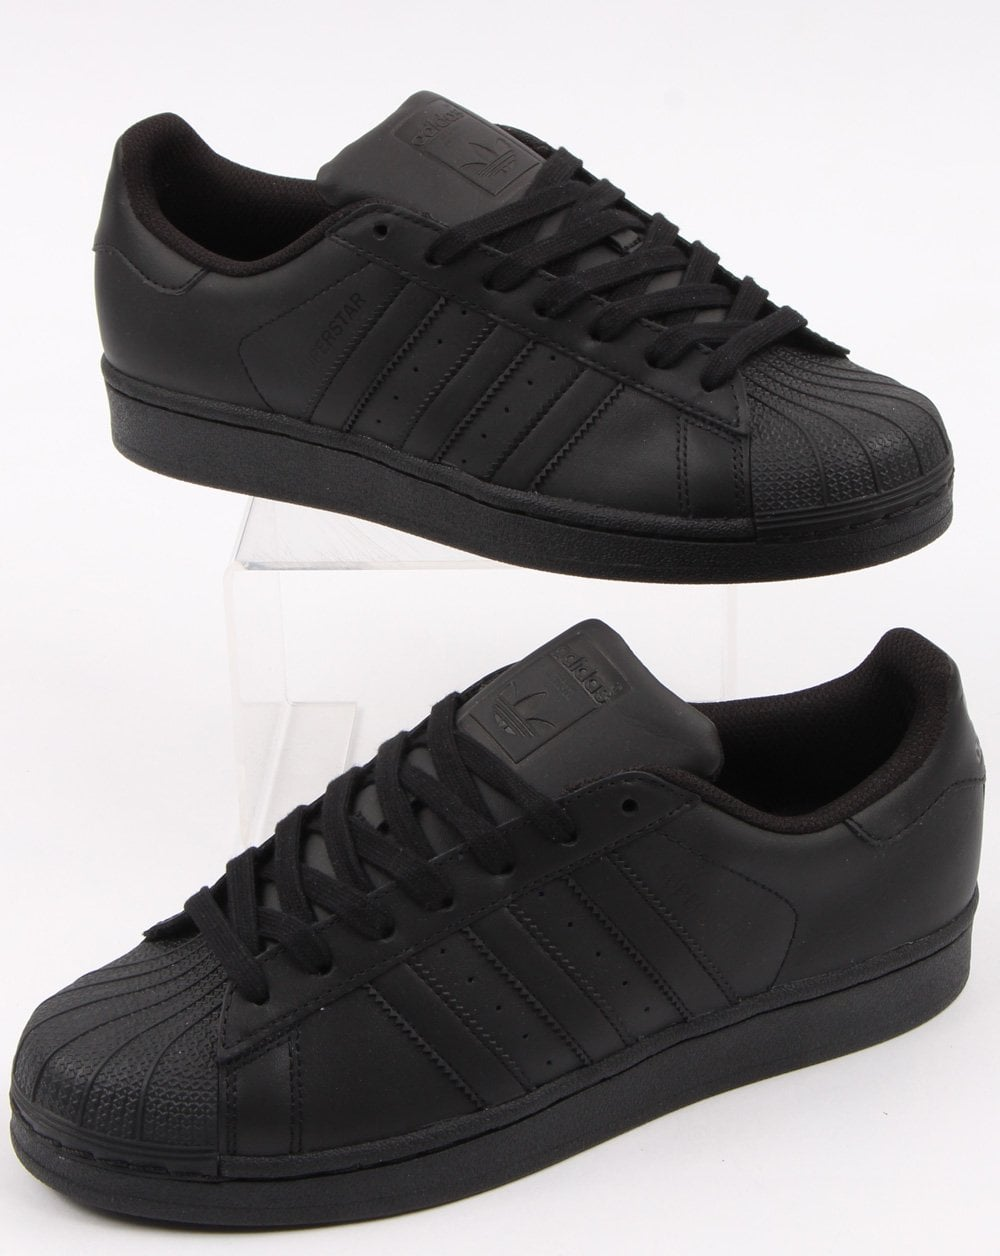 timeless design d7396 f49e4 Adidas Superstar Trainers Triple Black